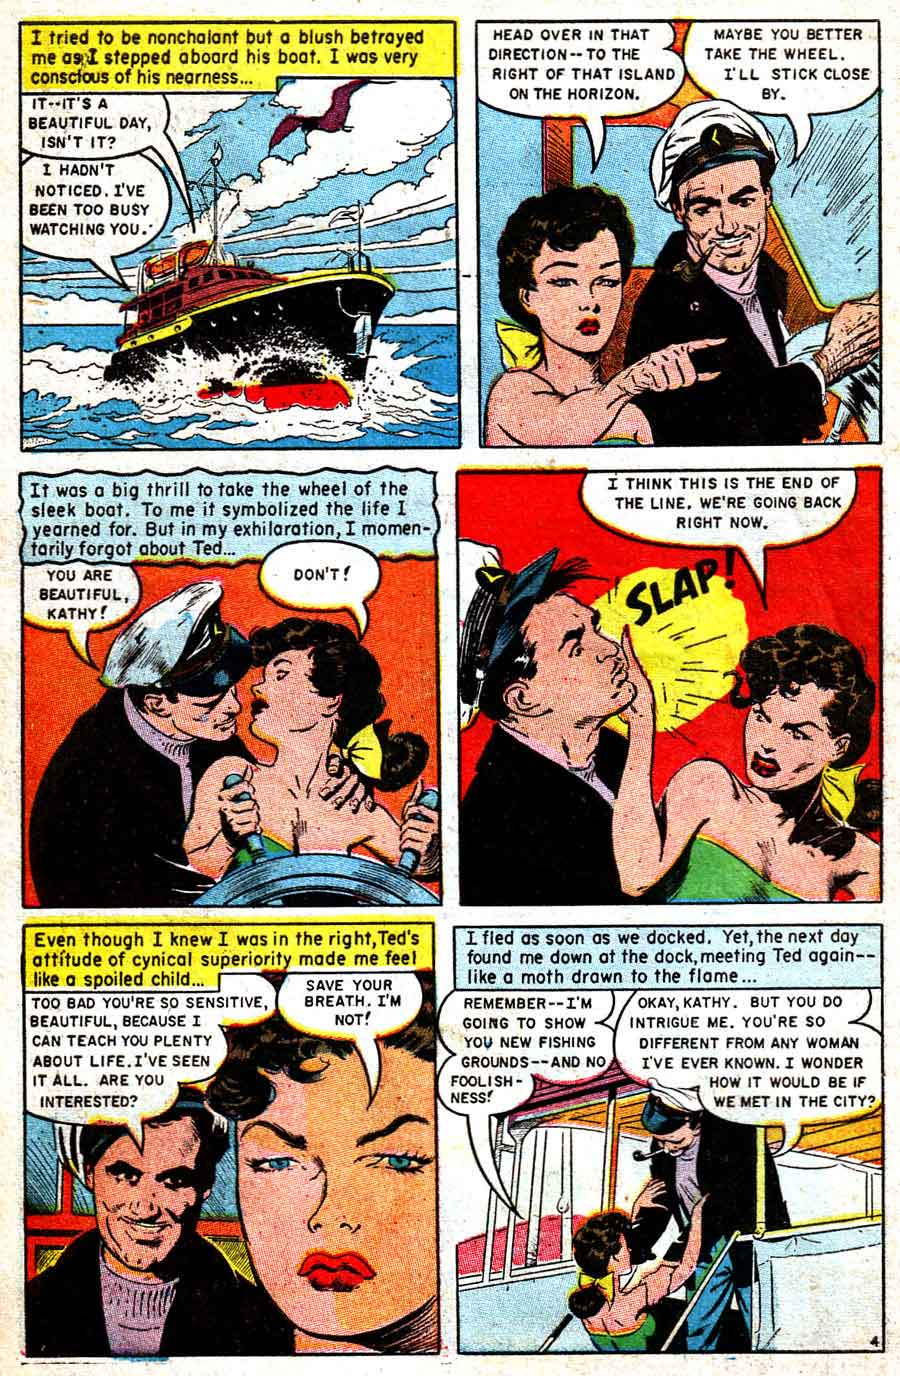 Personal Love v1 #27 golden age romance comic book page art by Frank Frazetta